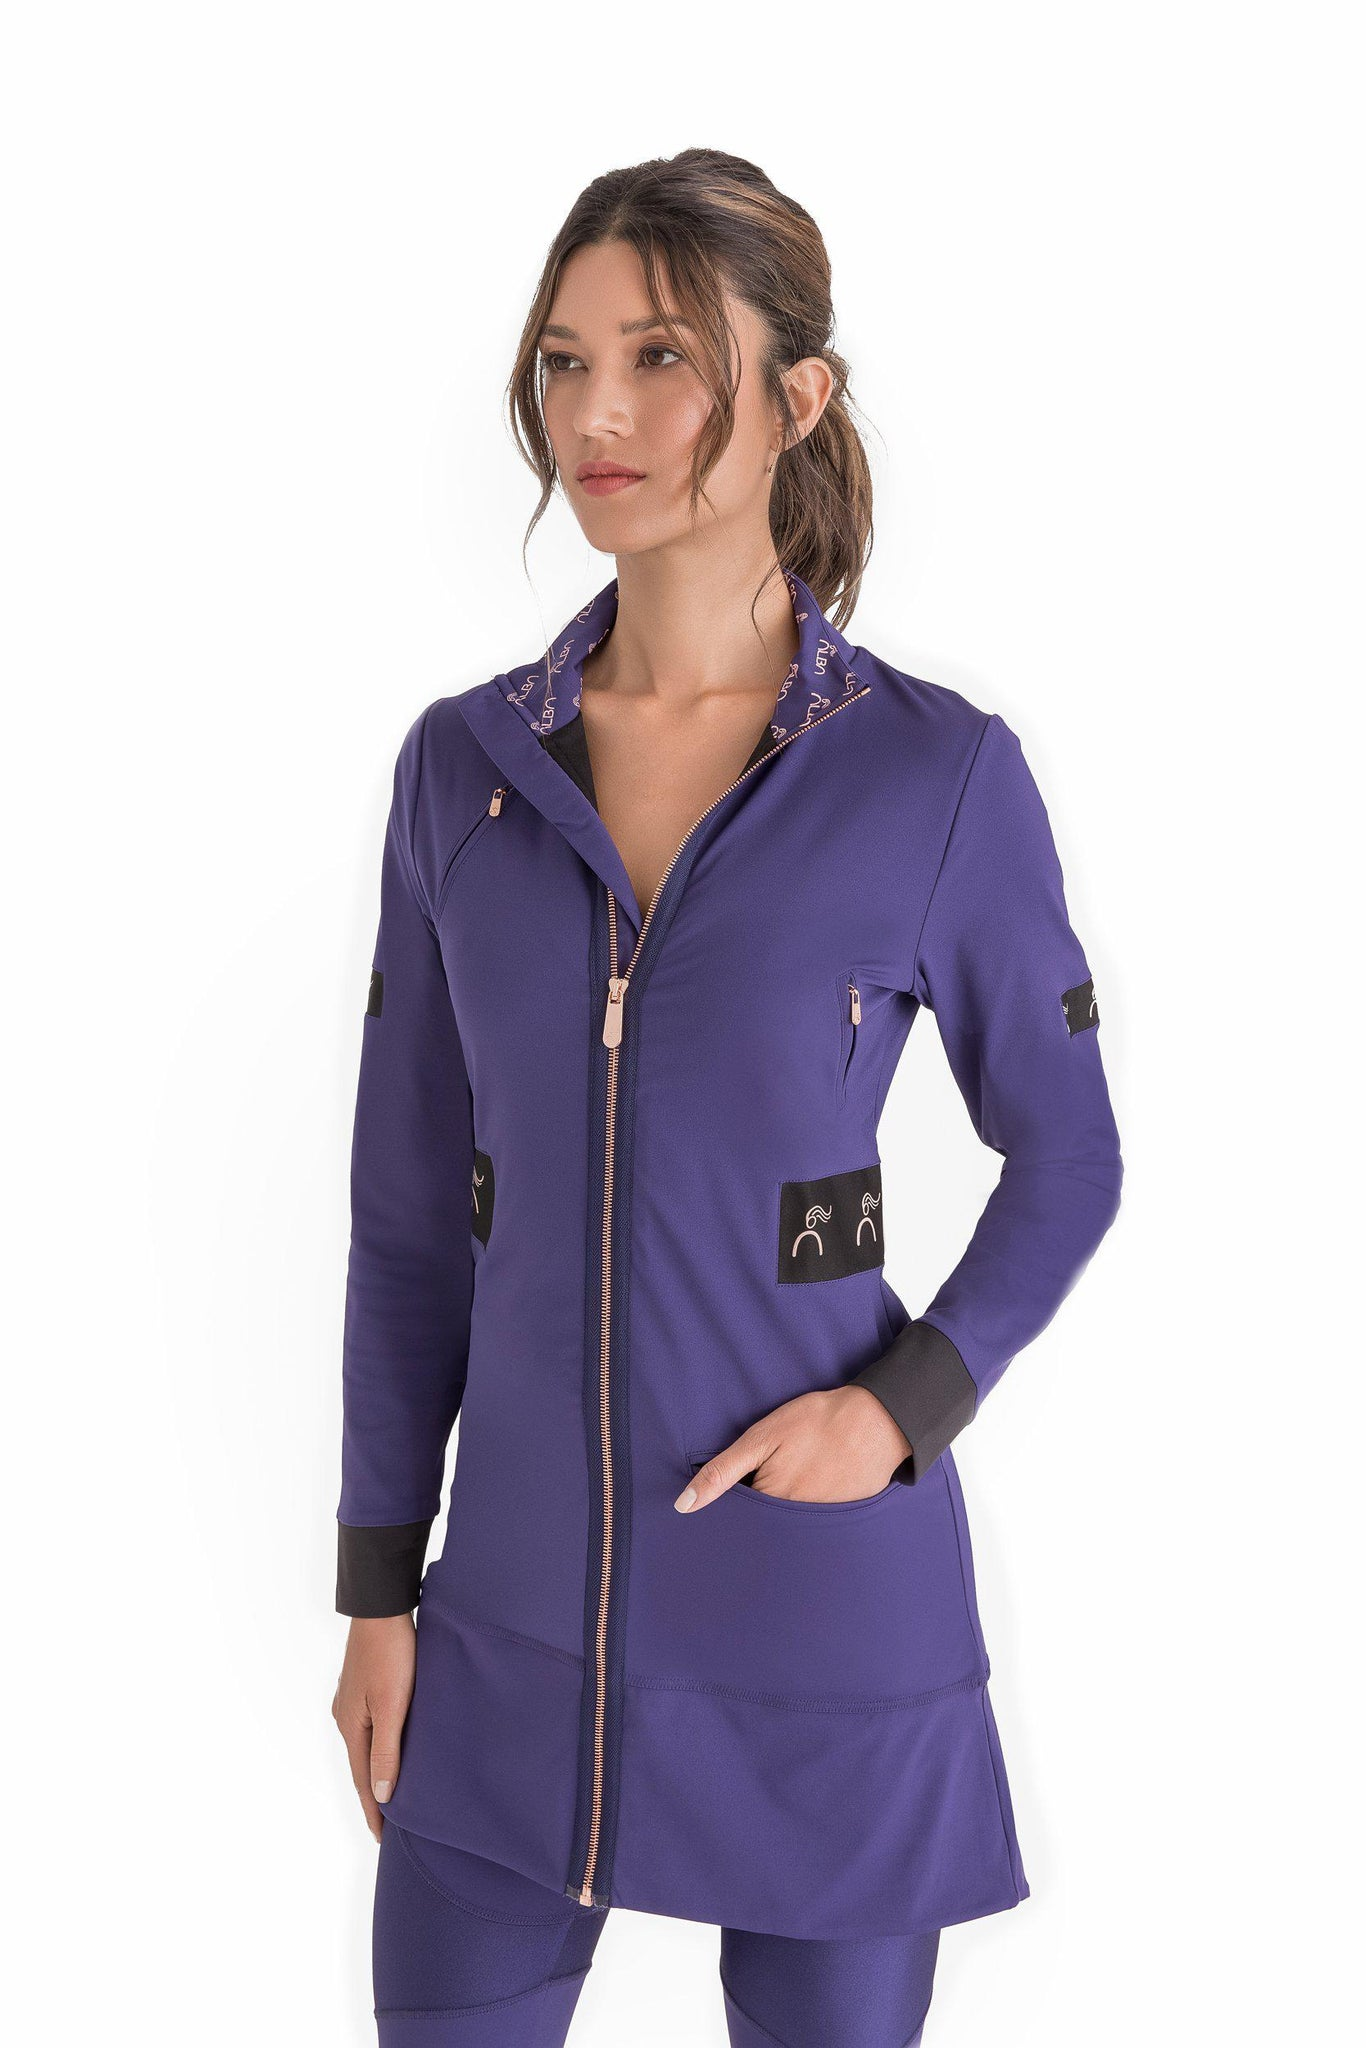 purple Carry the Day Jacket